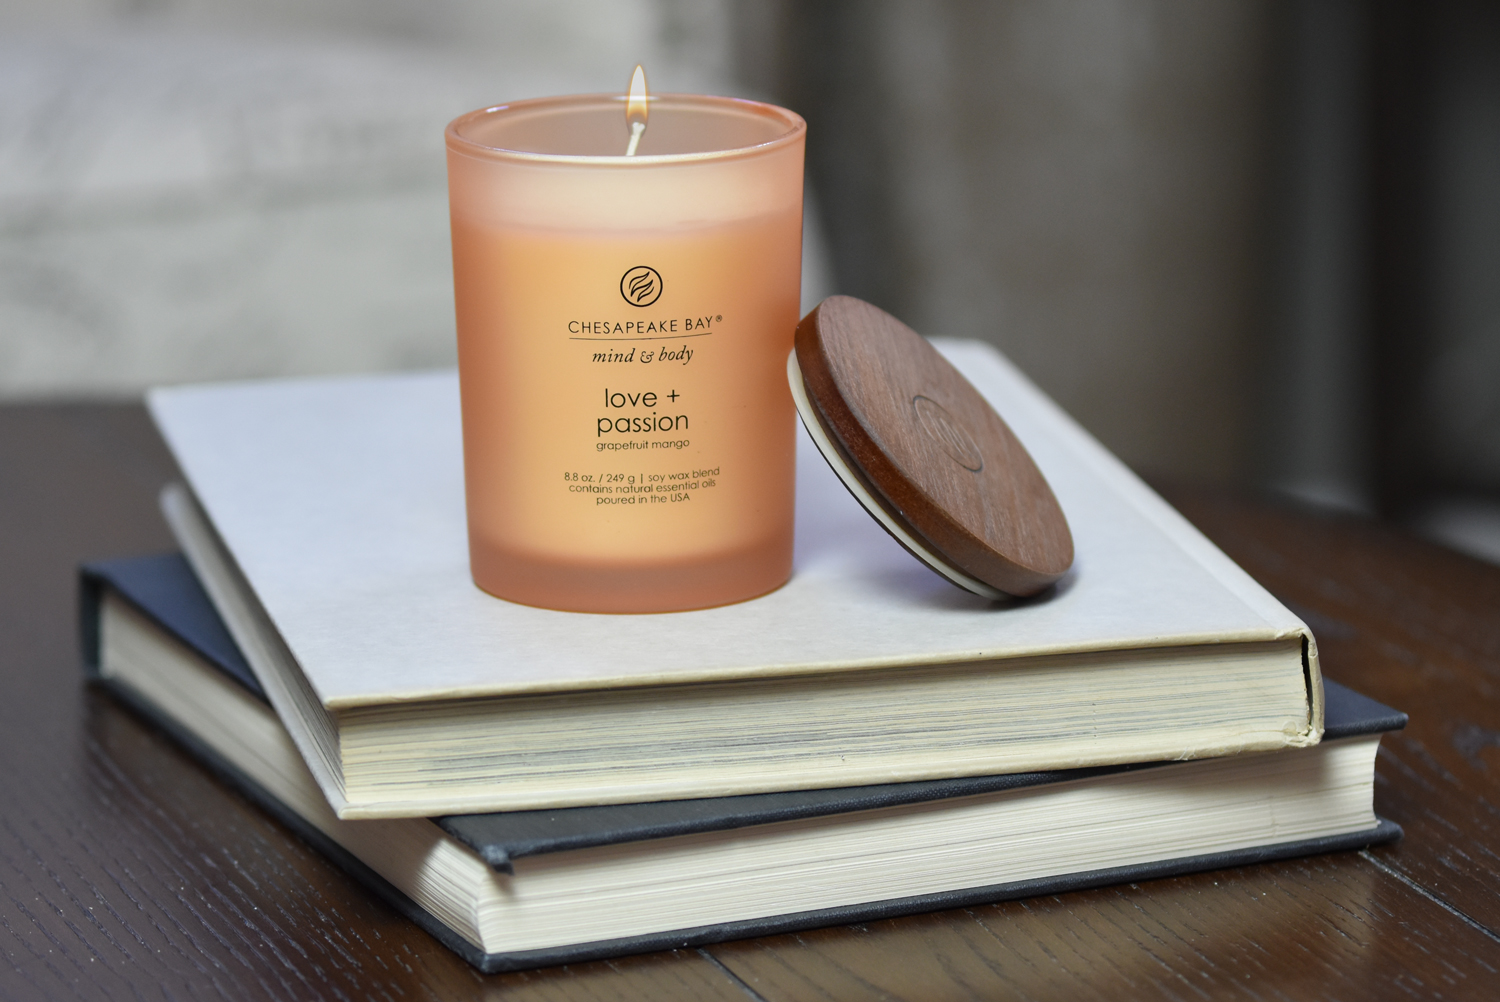 Chesapeake Bay Love & Passion candle